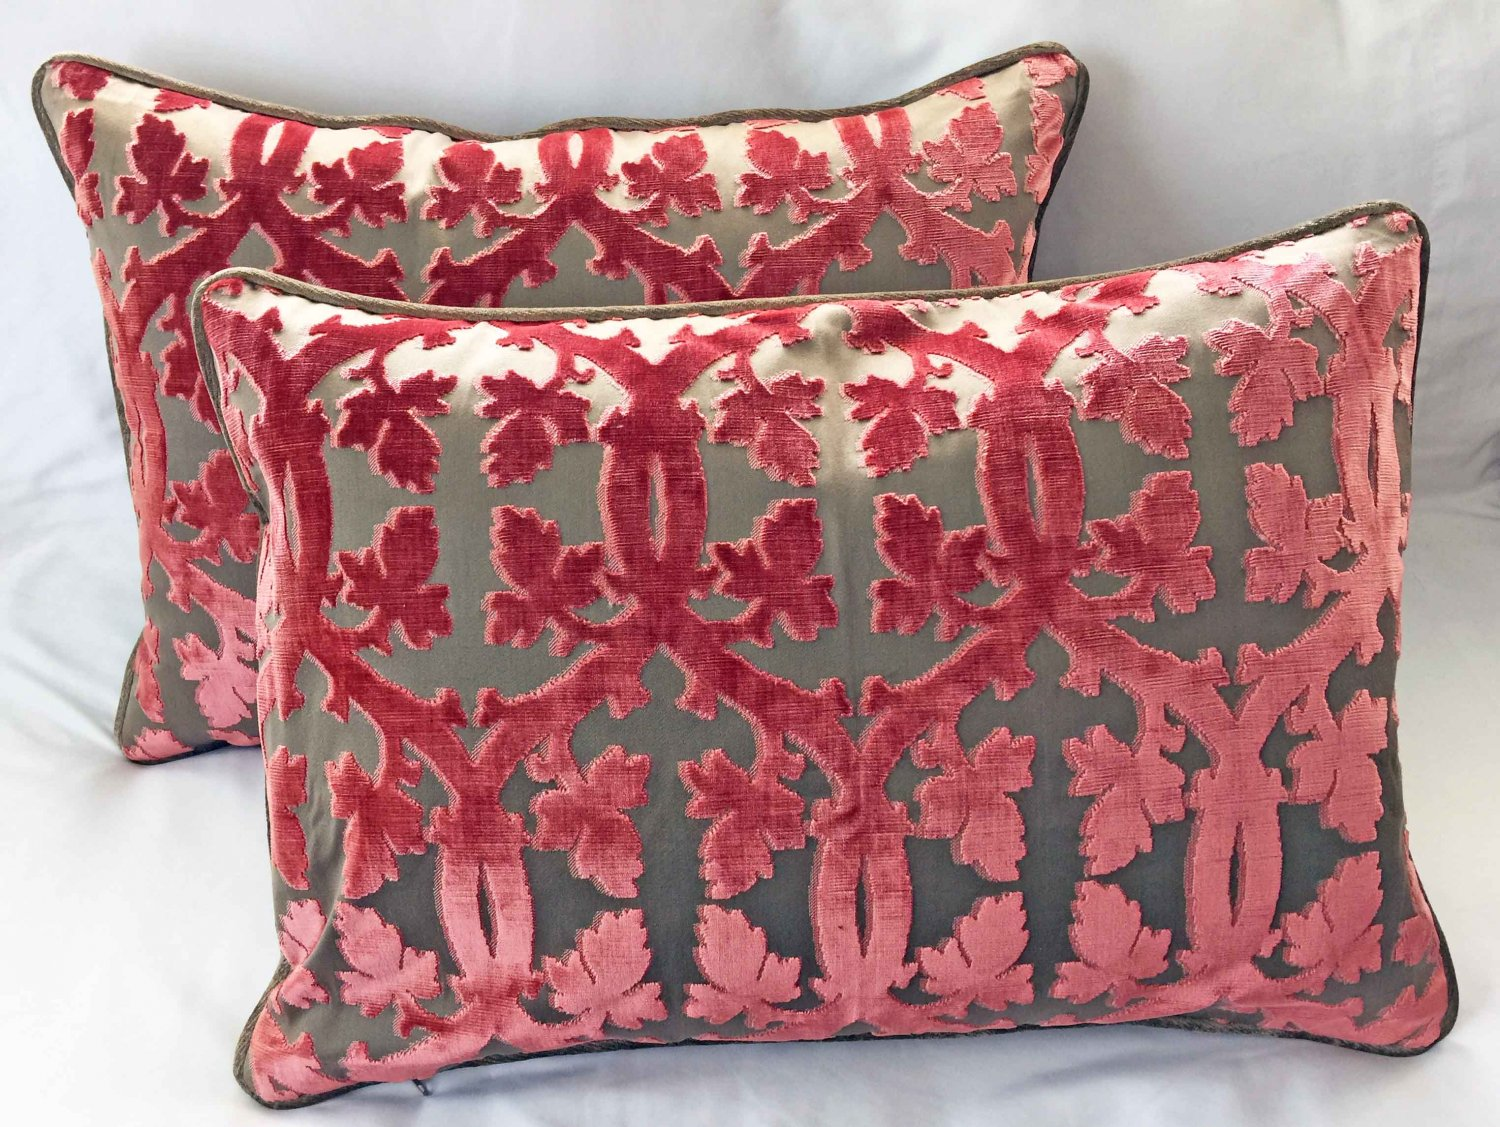 A Pair Of Scalamandre Falk Manor House Cut Velvet Bolster Pillows - Rose On Taupe